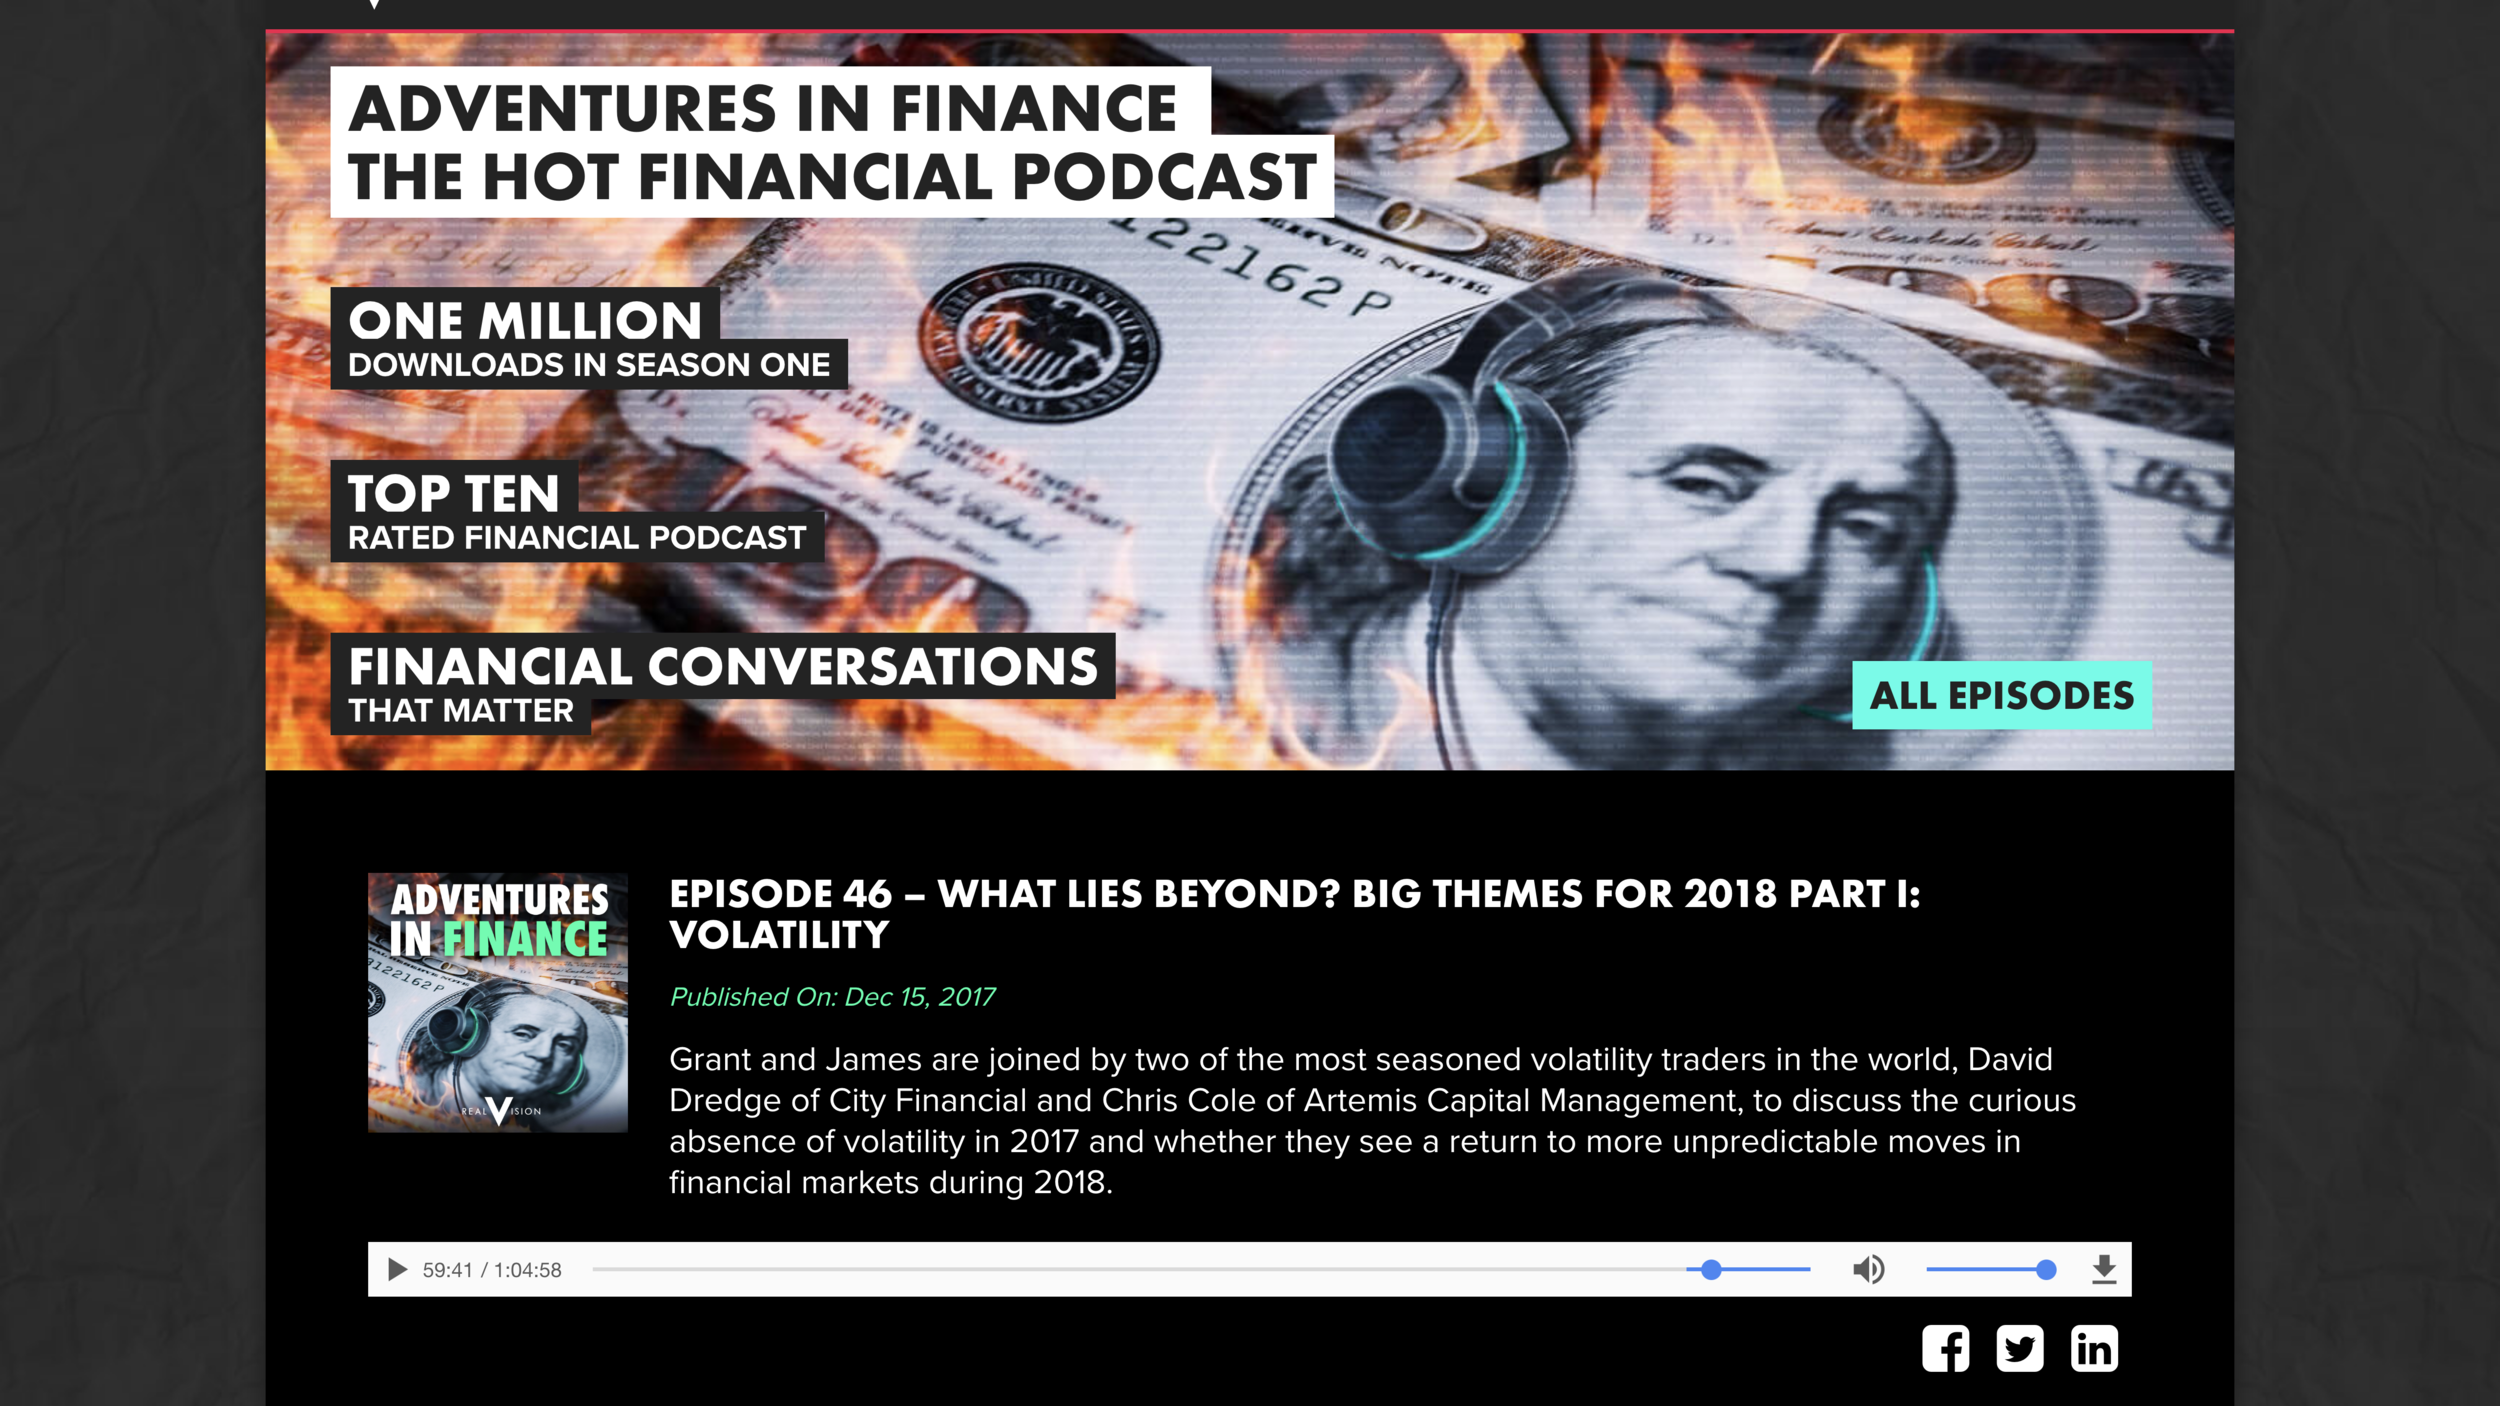 For the unedited audio version of Miles's recipe for success, go to the webpage linked here & start at the 59:41 mark as shown     Thanks to all the folks at Adventures in Finance for making this happen